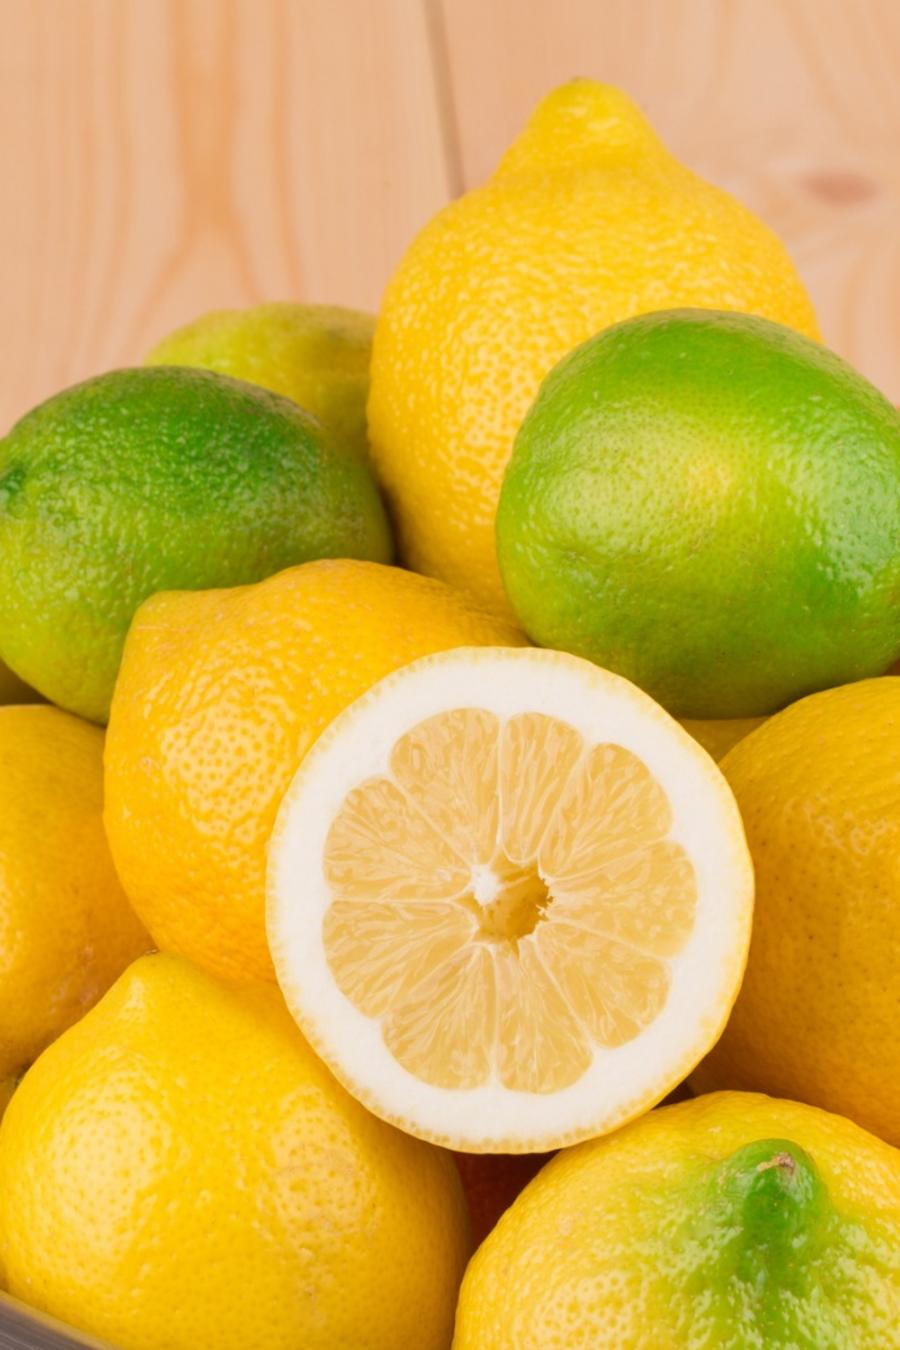 Lemons and limes in a colander.